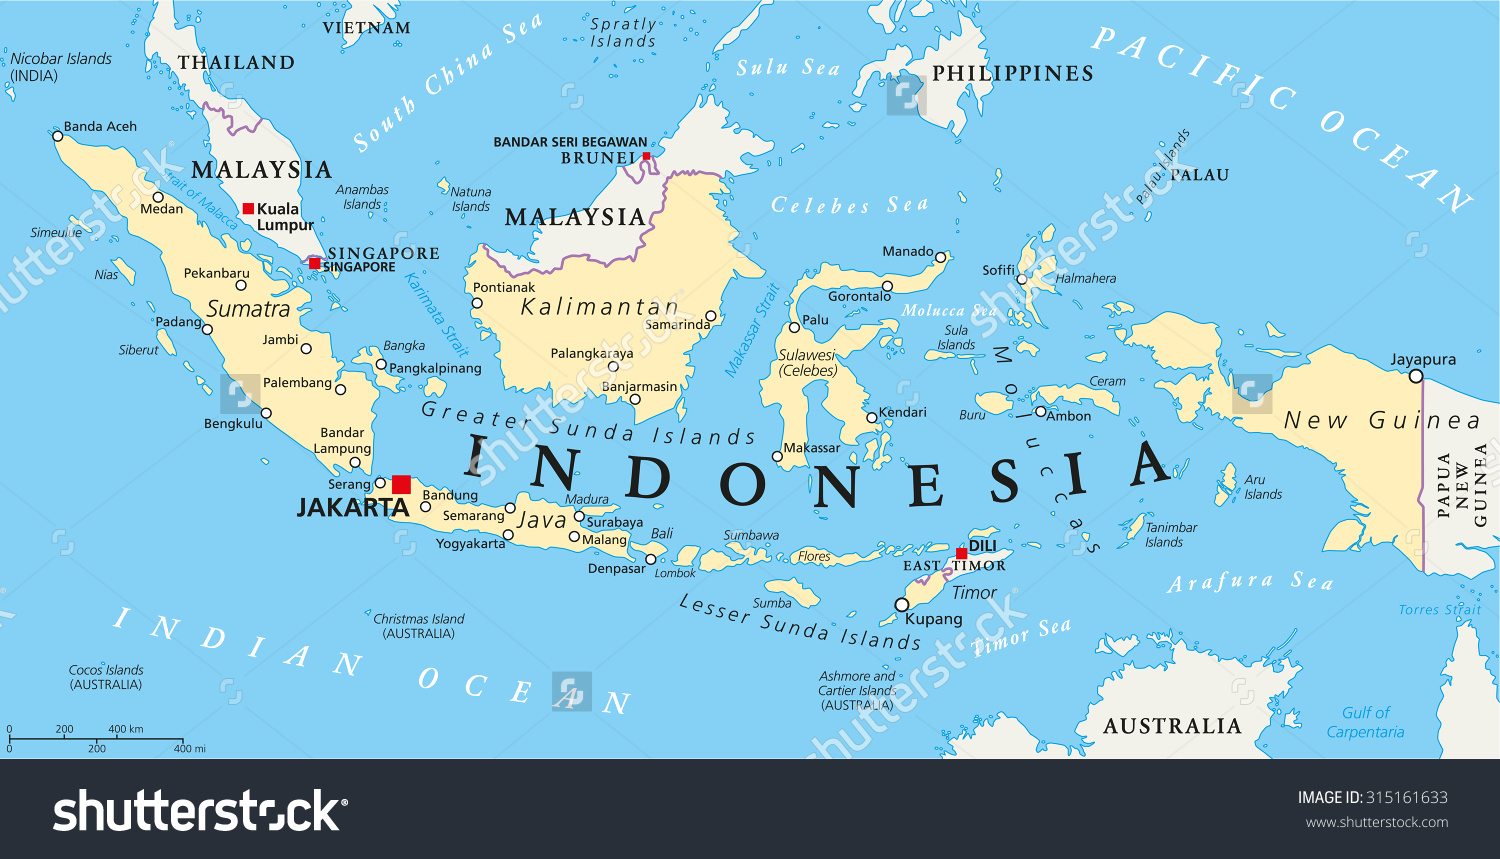 stock-vector-indonesia-political-map-with-capital-jakarta-national-borders-and-important-cities-english-315161633